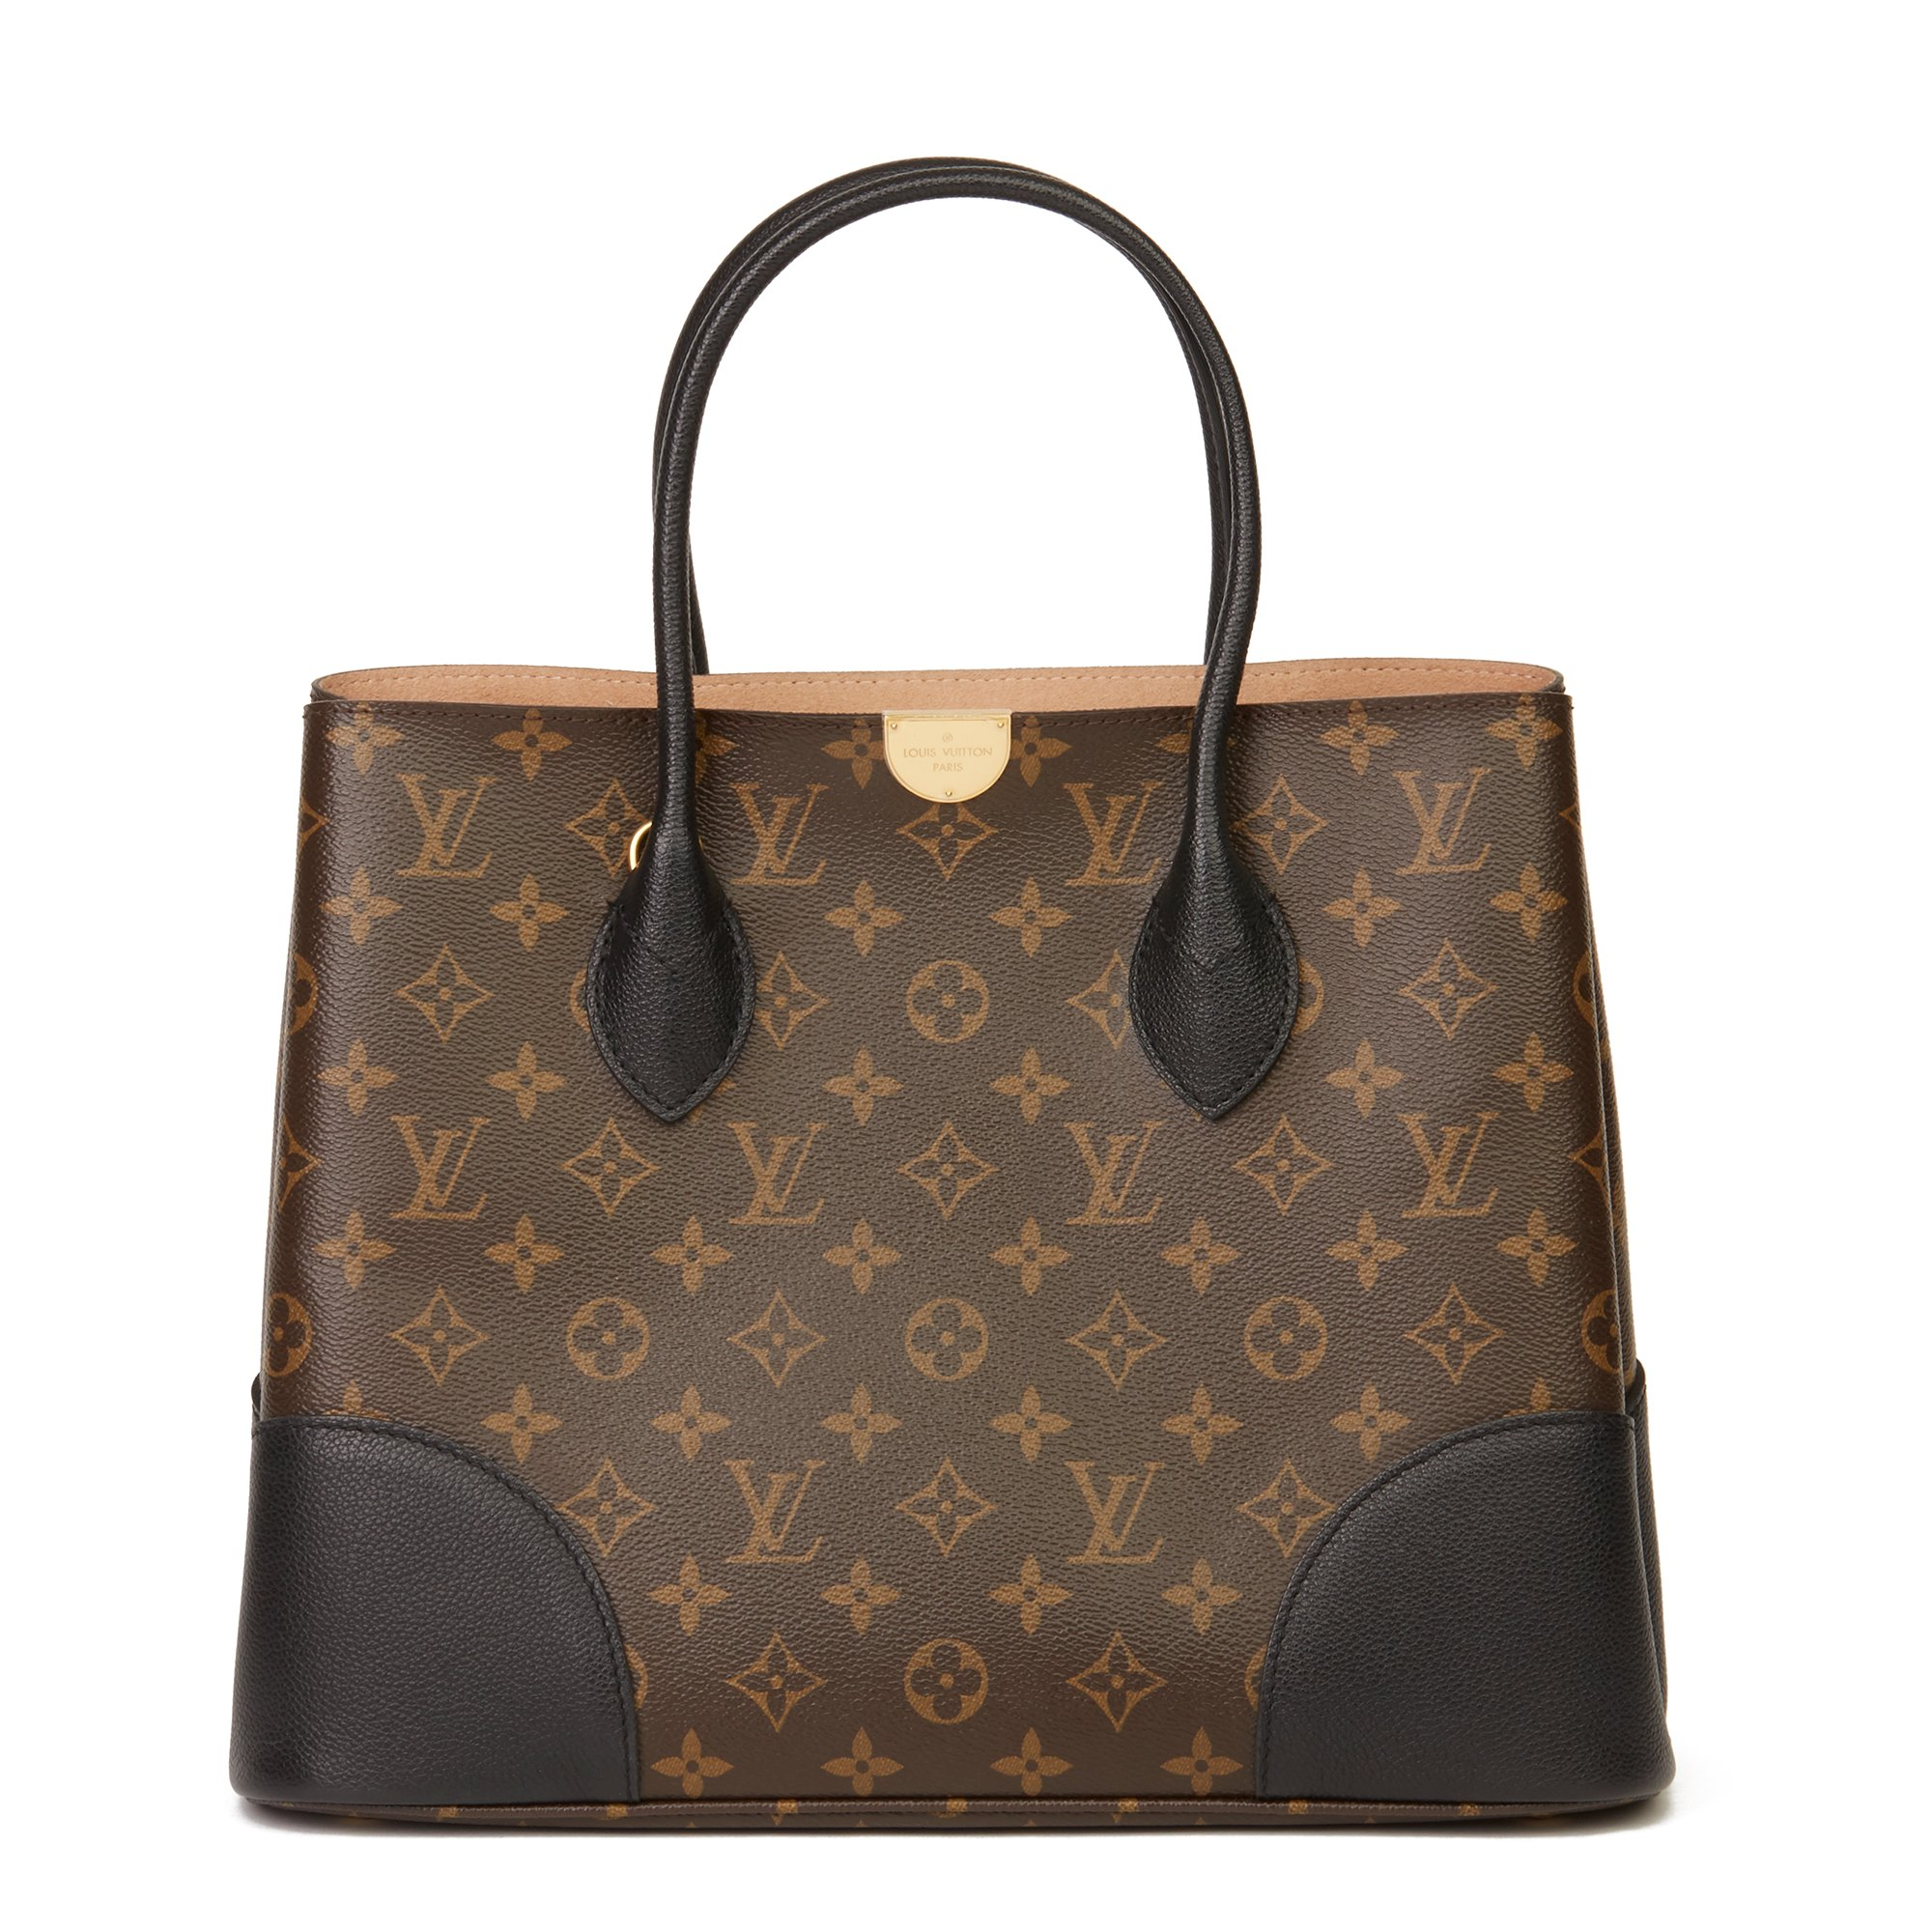 Louis Vuitton Brown Monogram Coated Canvas & Black Calfskin Leather Flandrin